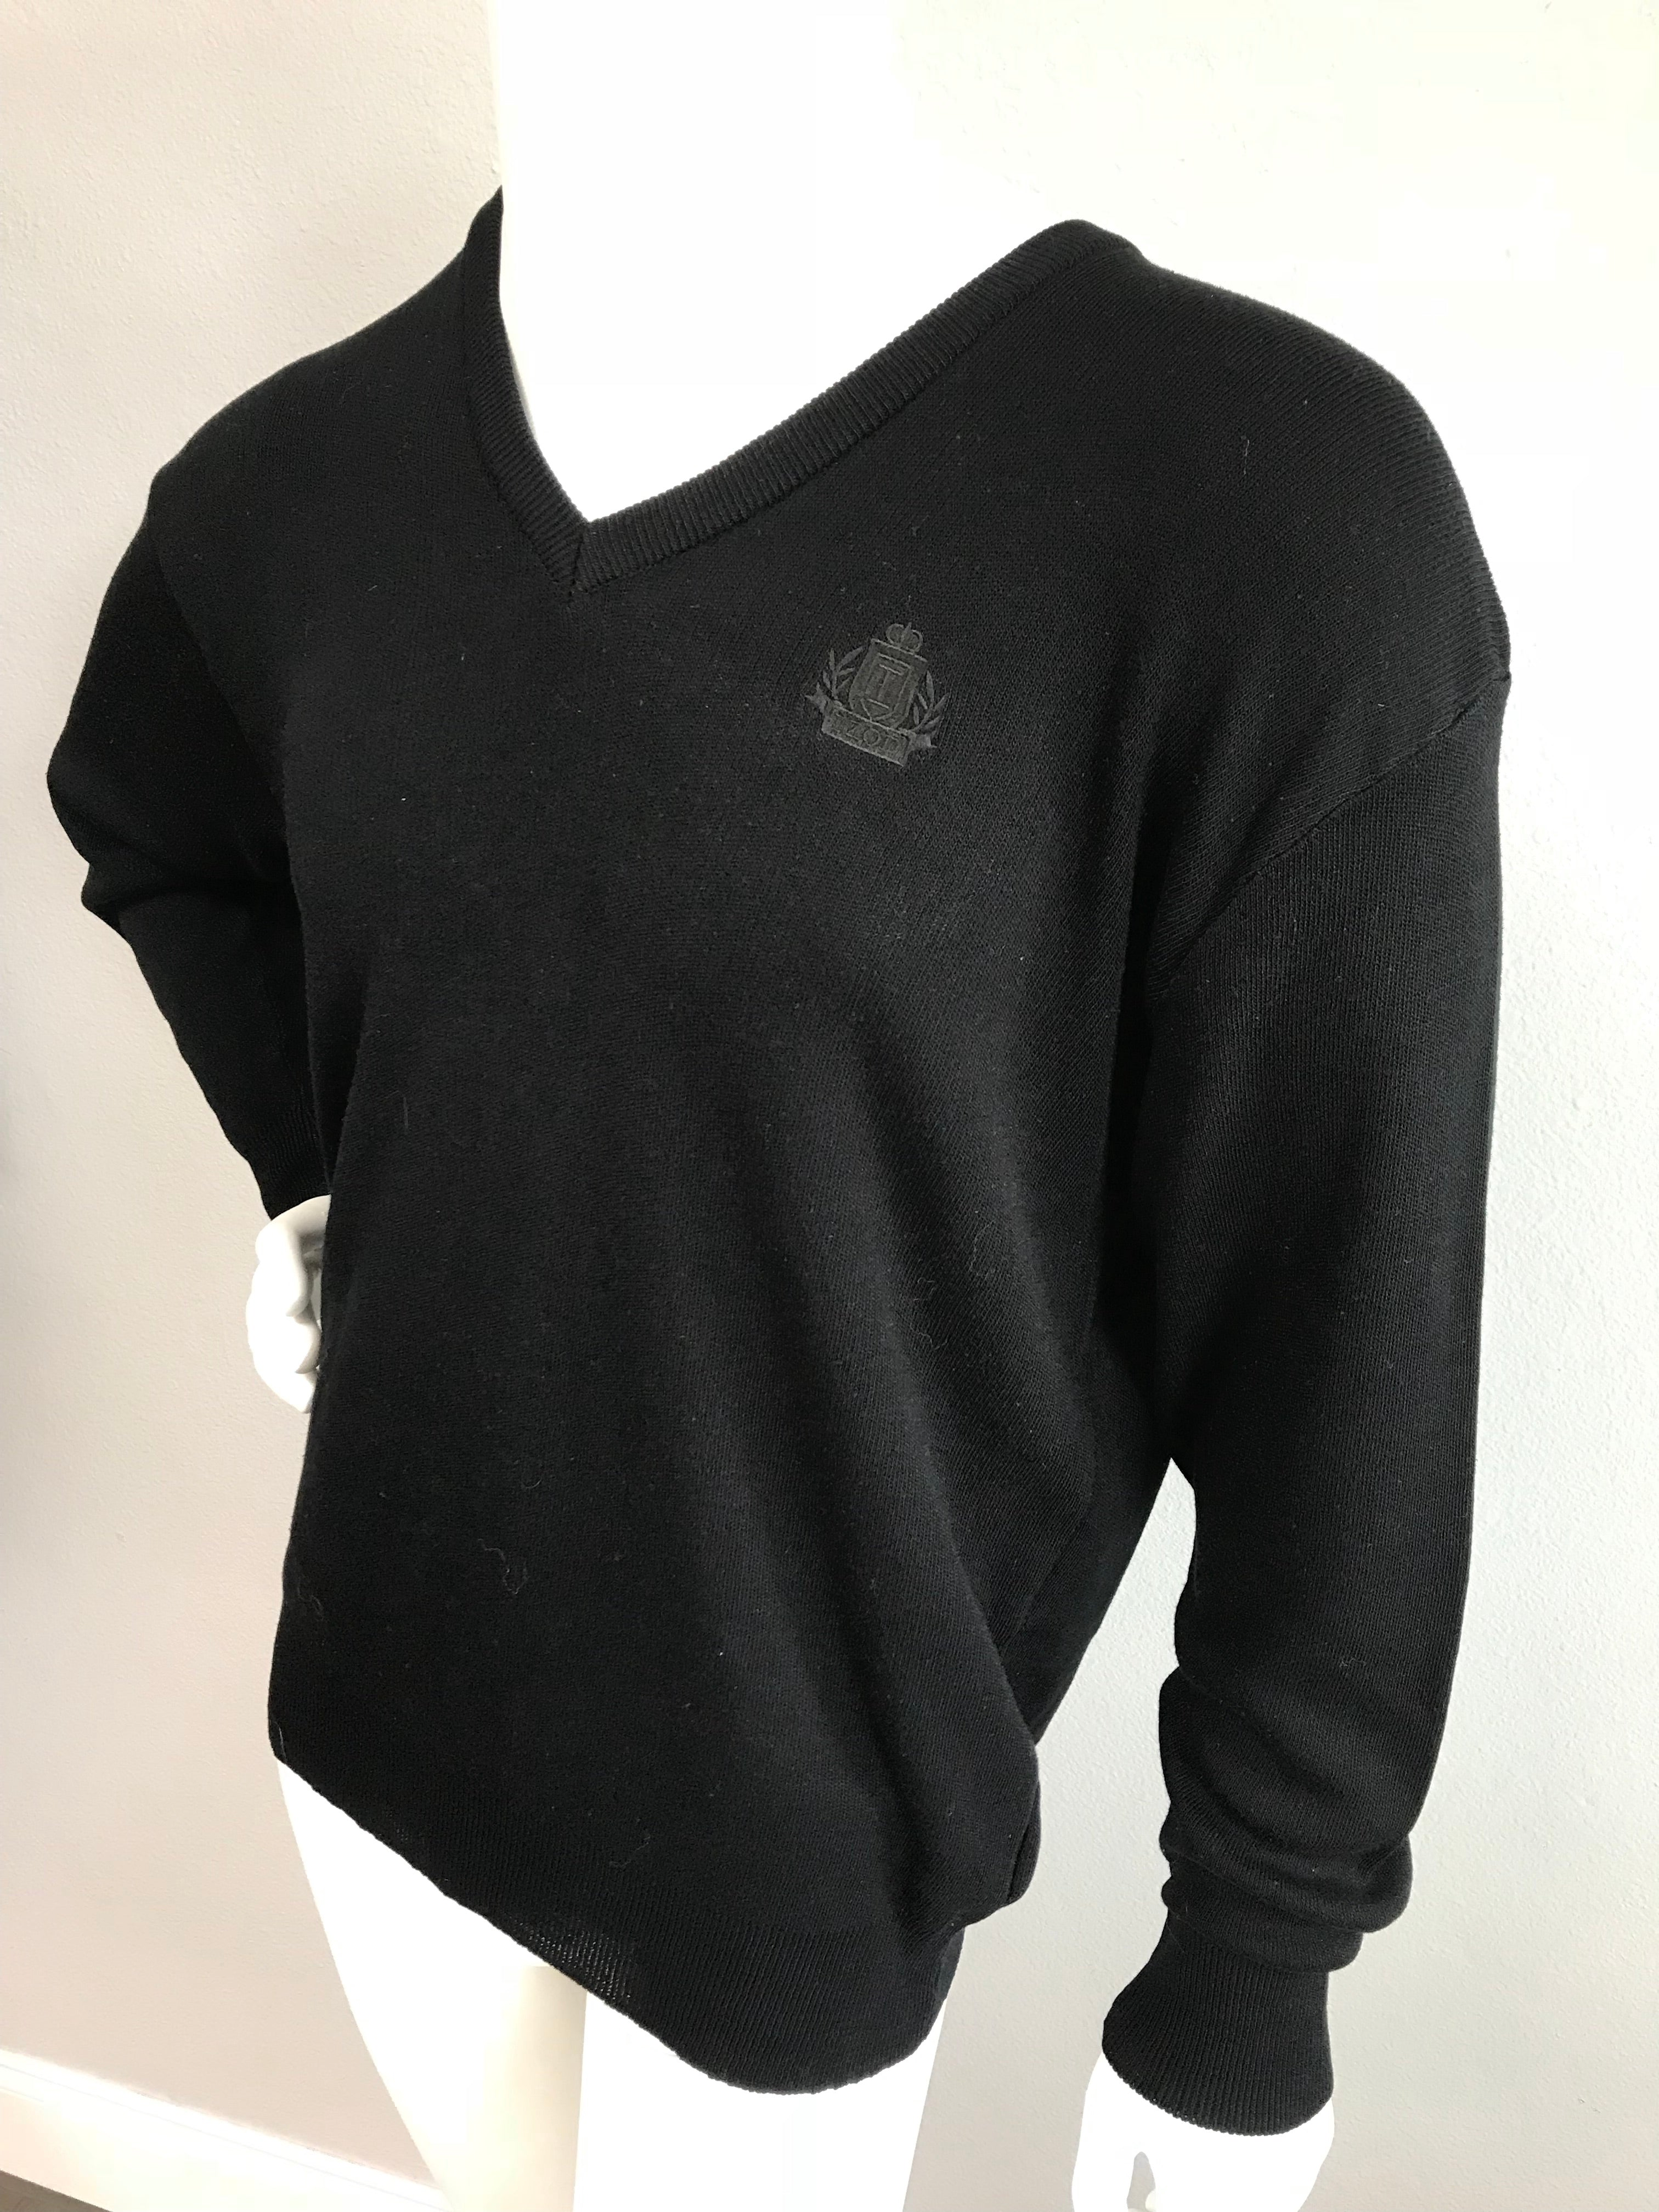 IZOD Black Sweater - Vanity's Vault